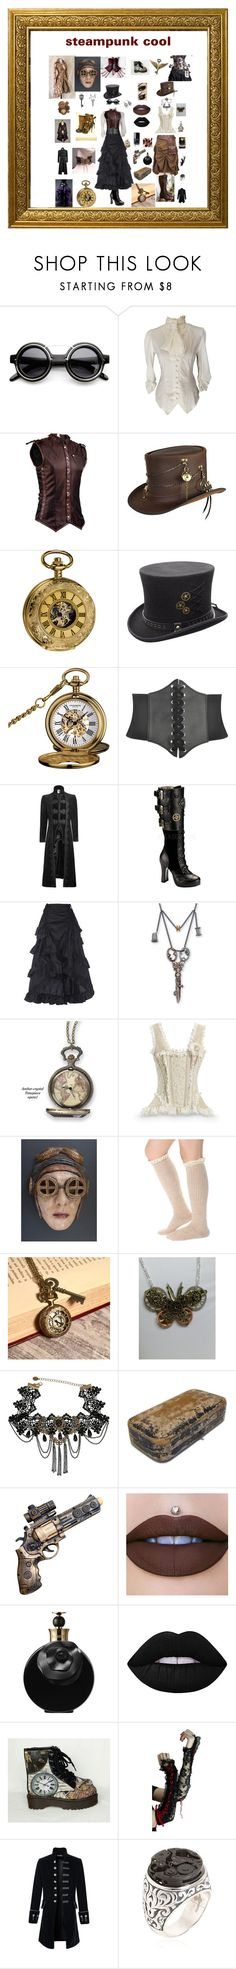 """steampunk cool"" by giagiagia ❤ liked on Polyvore featuring ZeroUV, Overland Sheepskin Co., Akribos XXIV, Demonia, Alexander McQueen, Valentino, Lime Crime, Poizen Industries and Cantini MC Firenze"